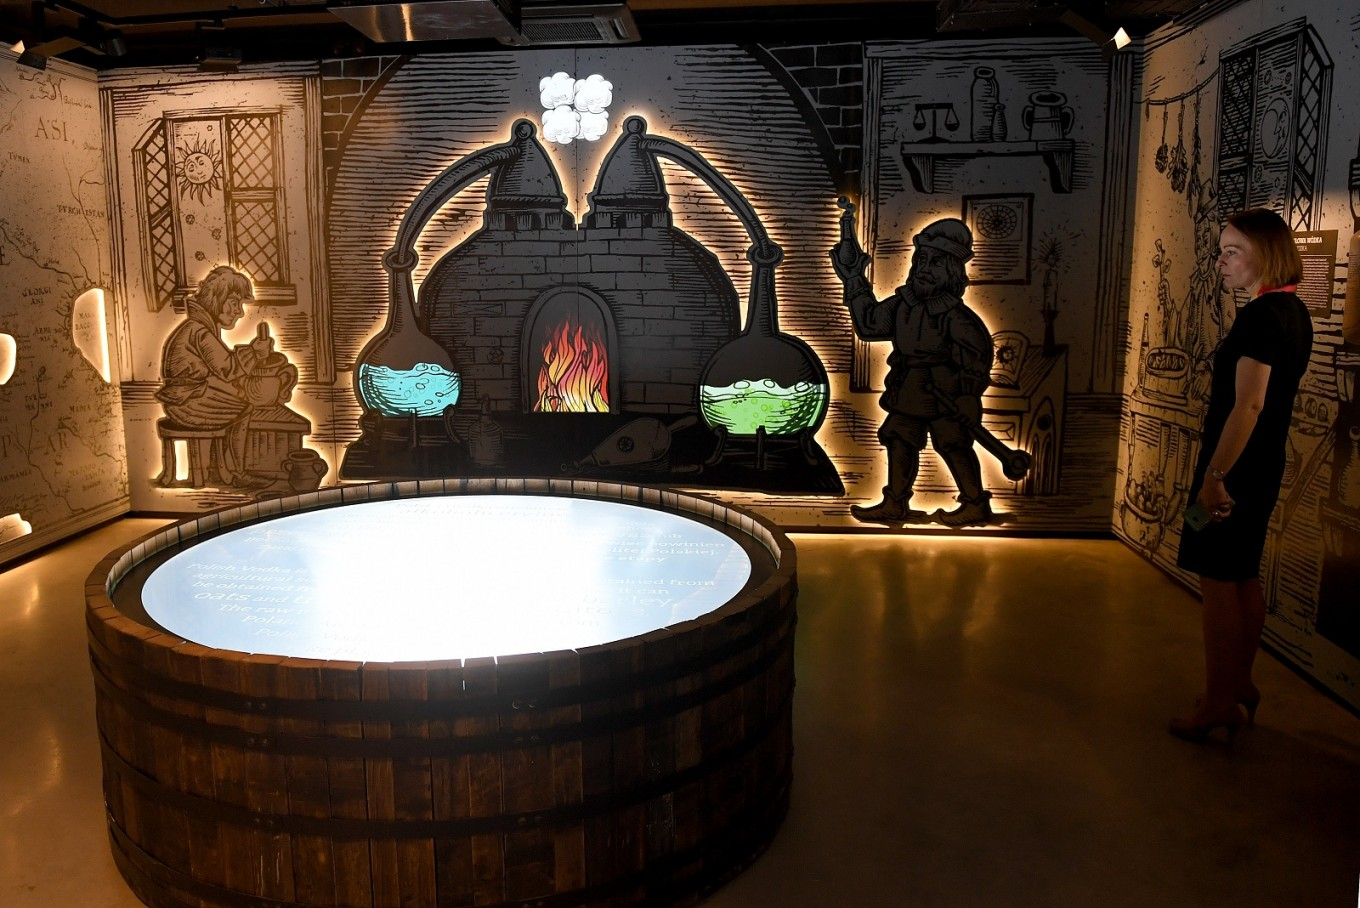 Polish Vodka Museum opens in Warsaw next week